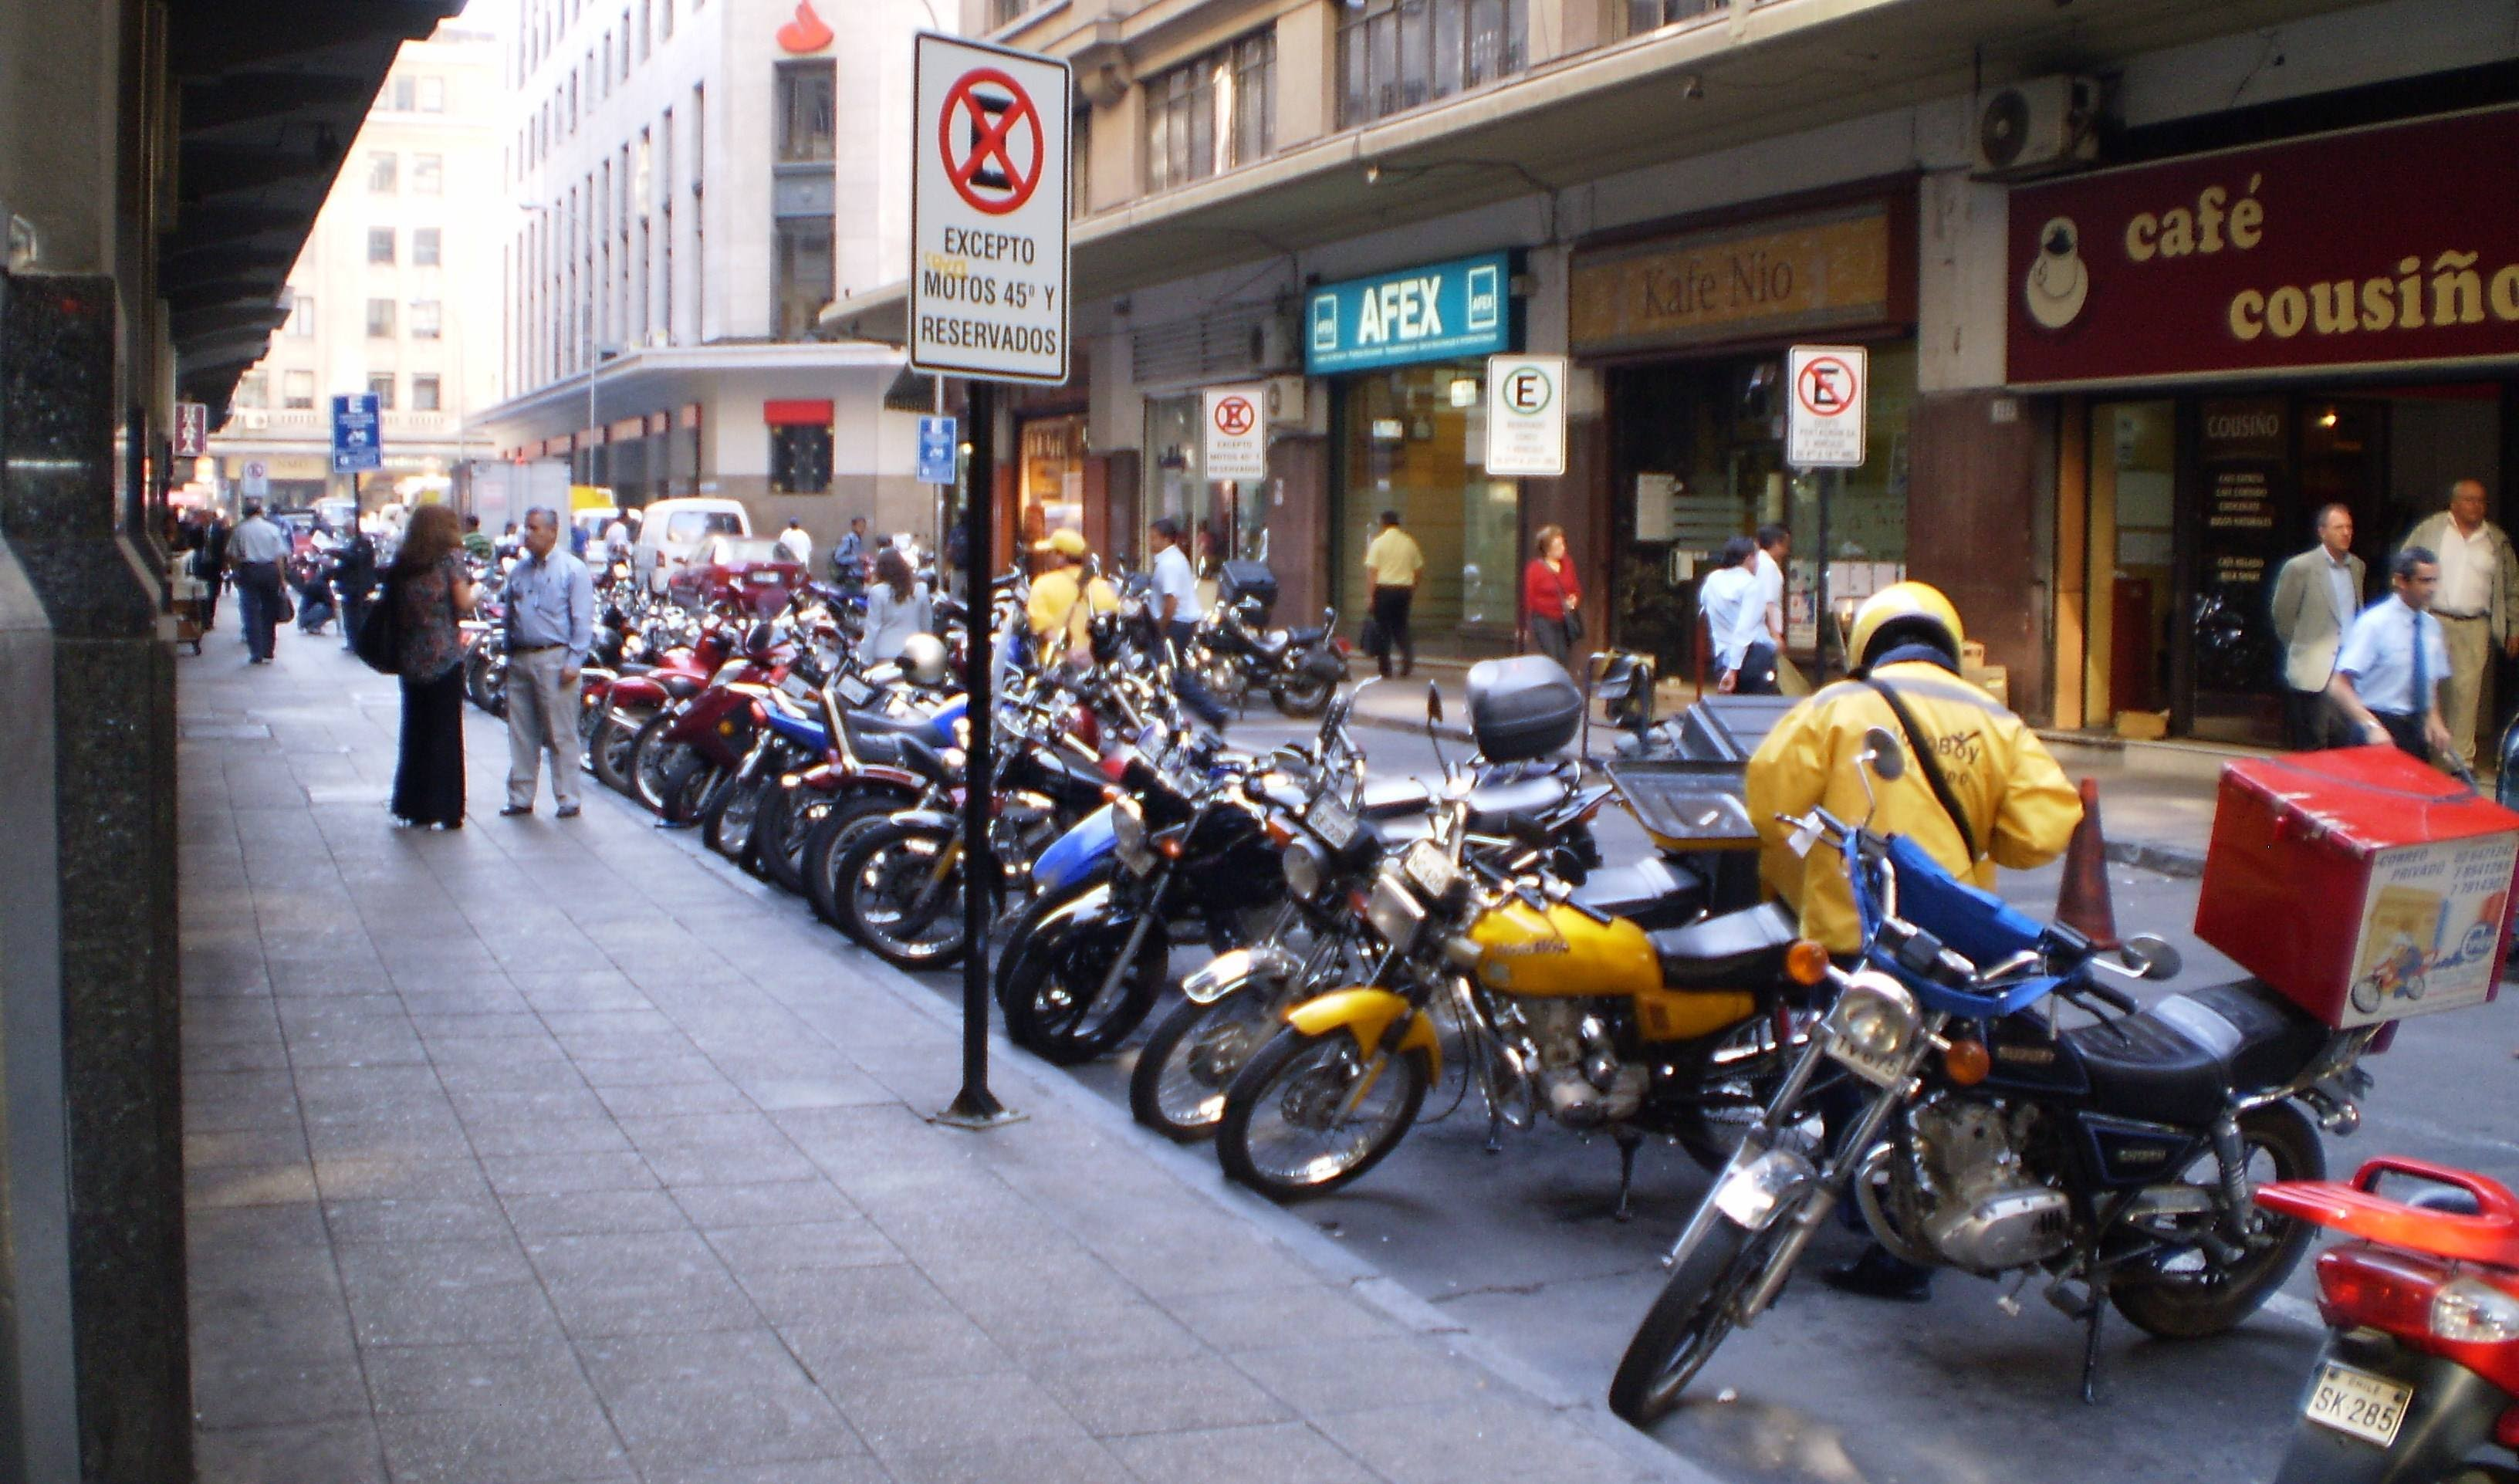 Estacionamiento de motos